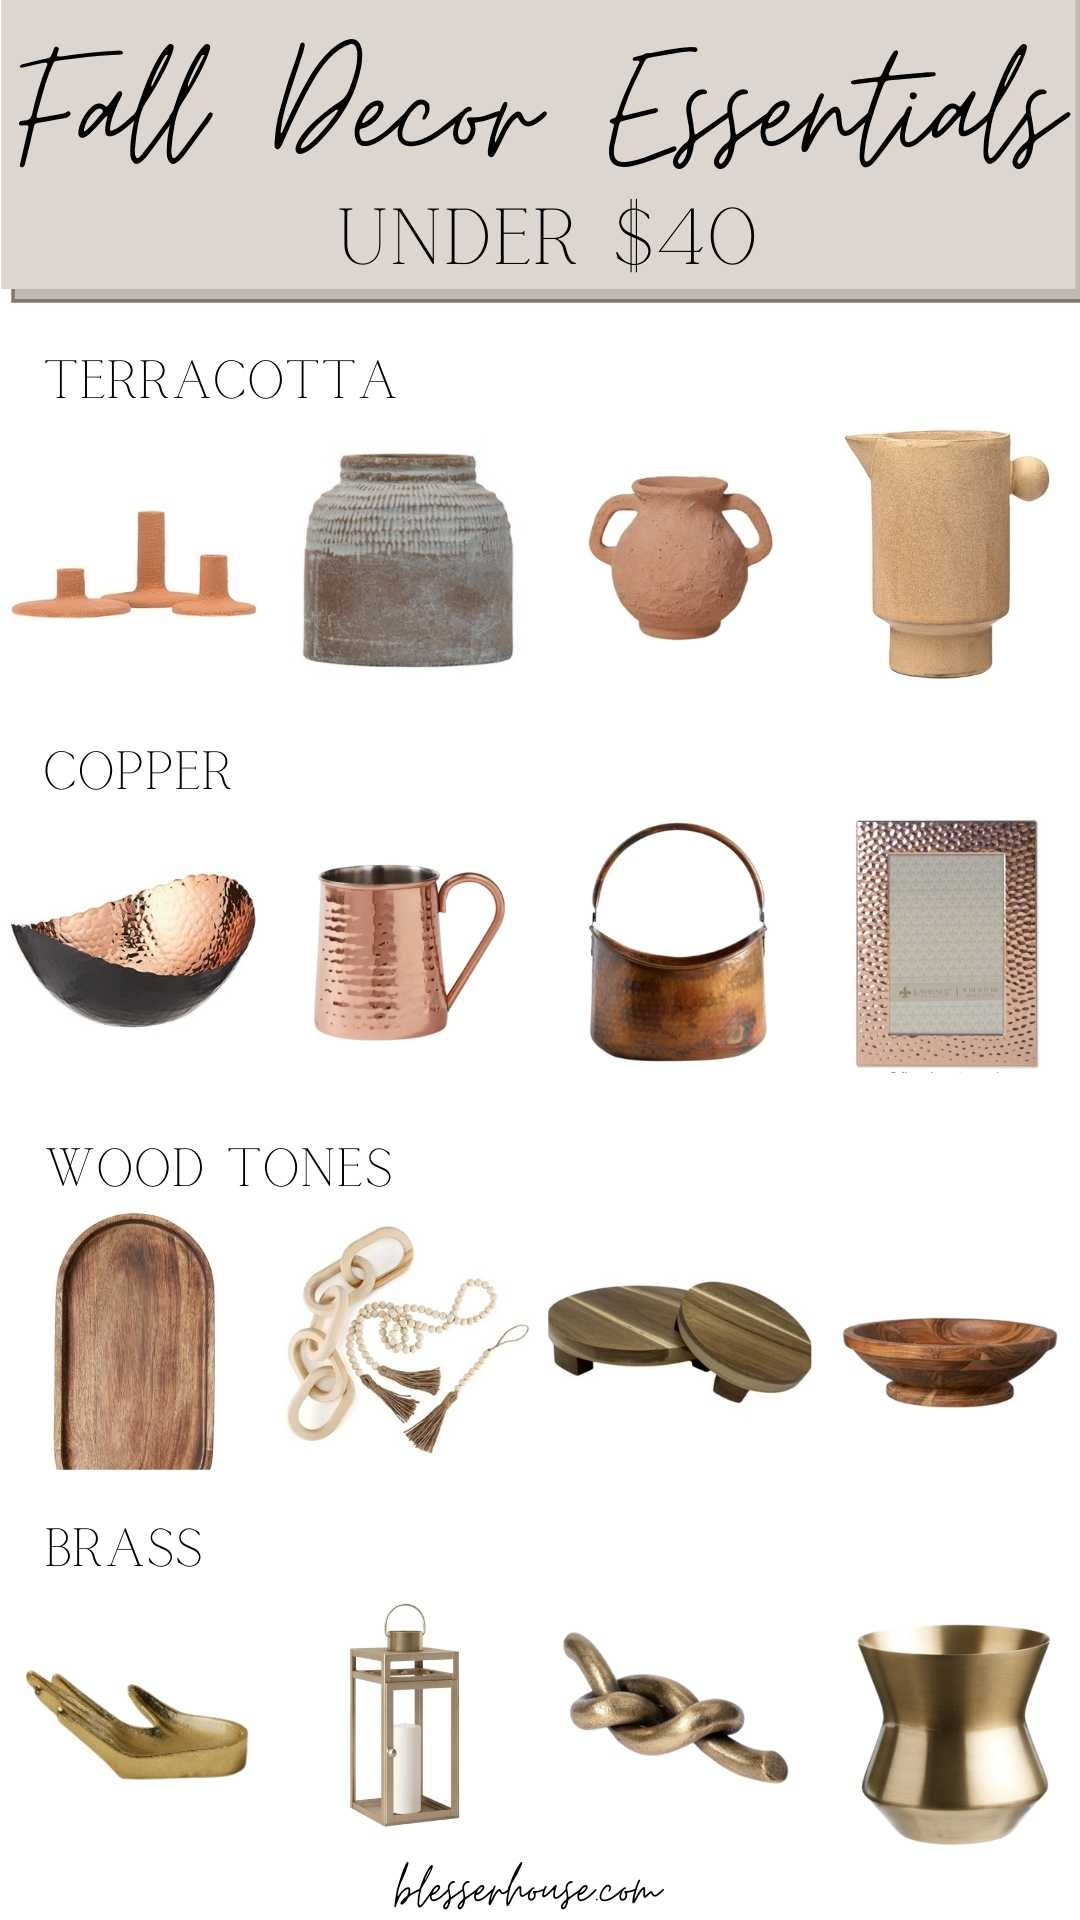 Fall Home Decor Under $40 - terracotta, copper, wood tones, and brass